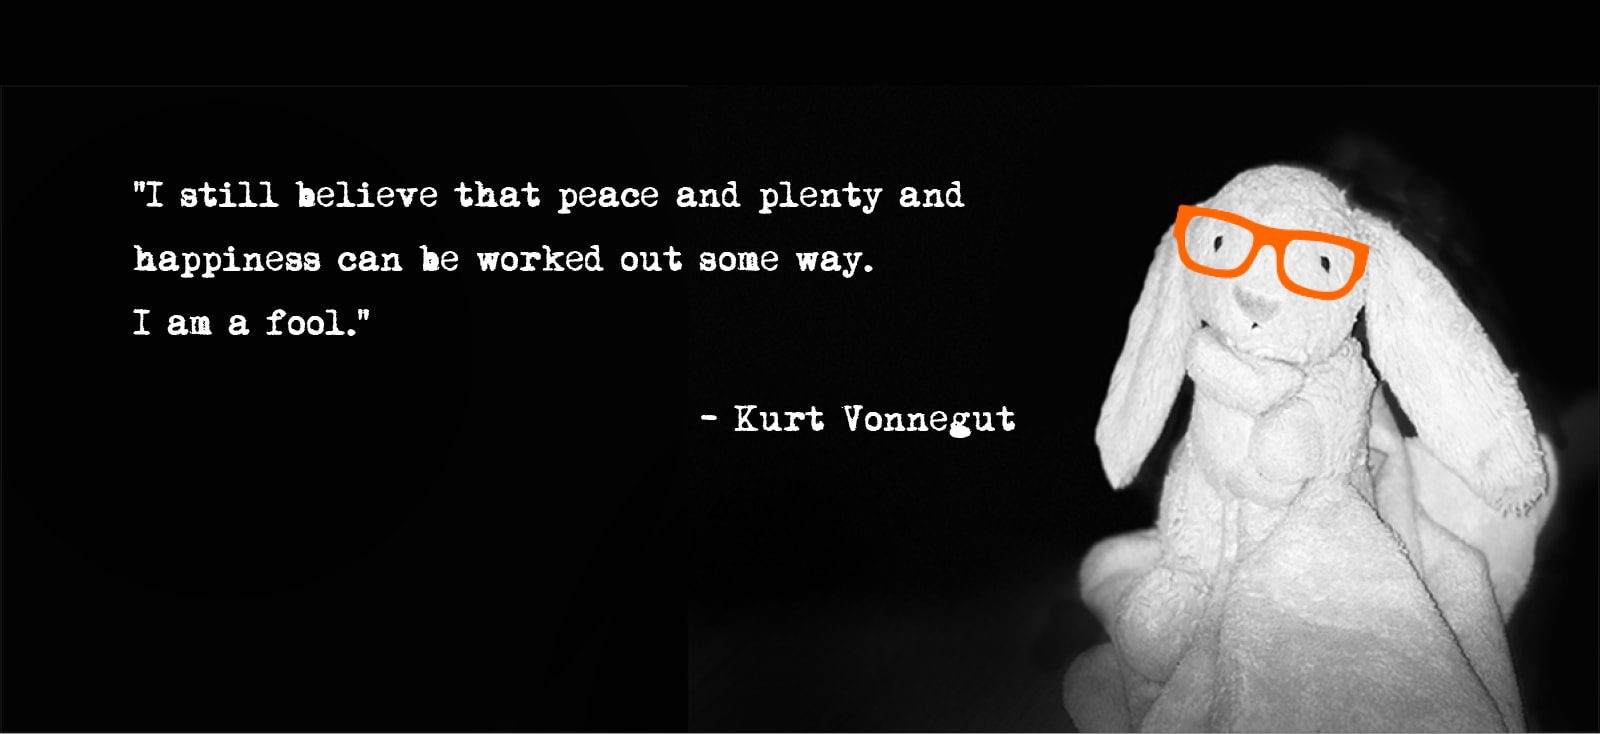 Peace, plenty and happiness - Kurt Vonnegut